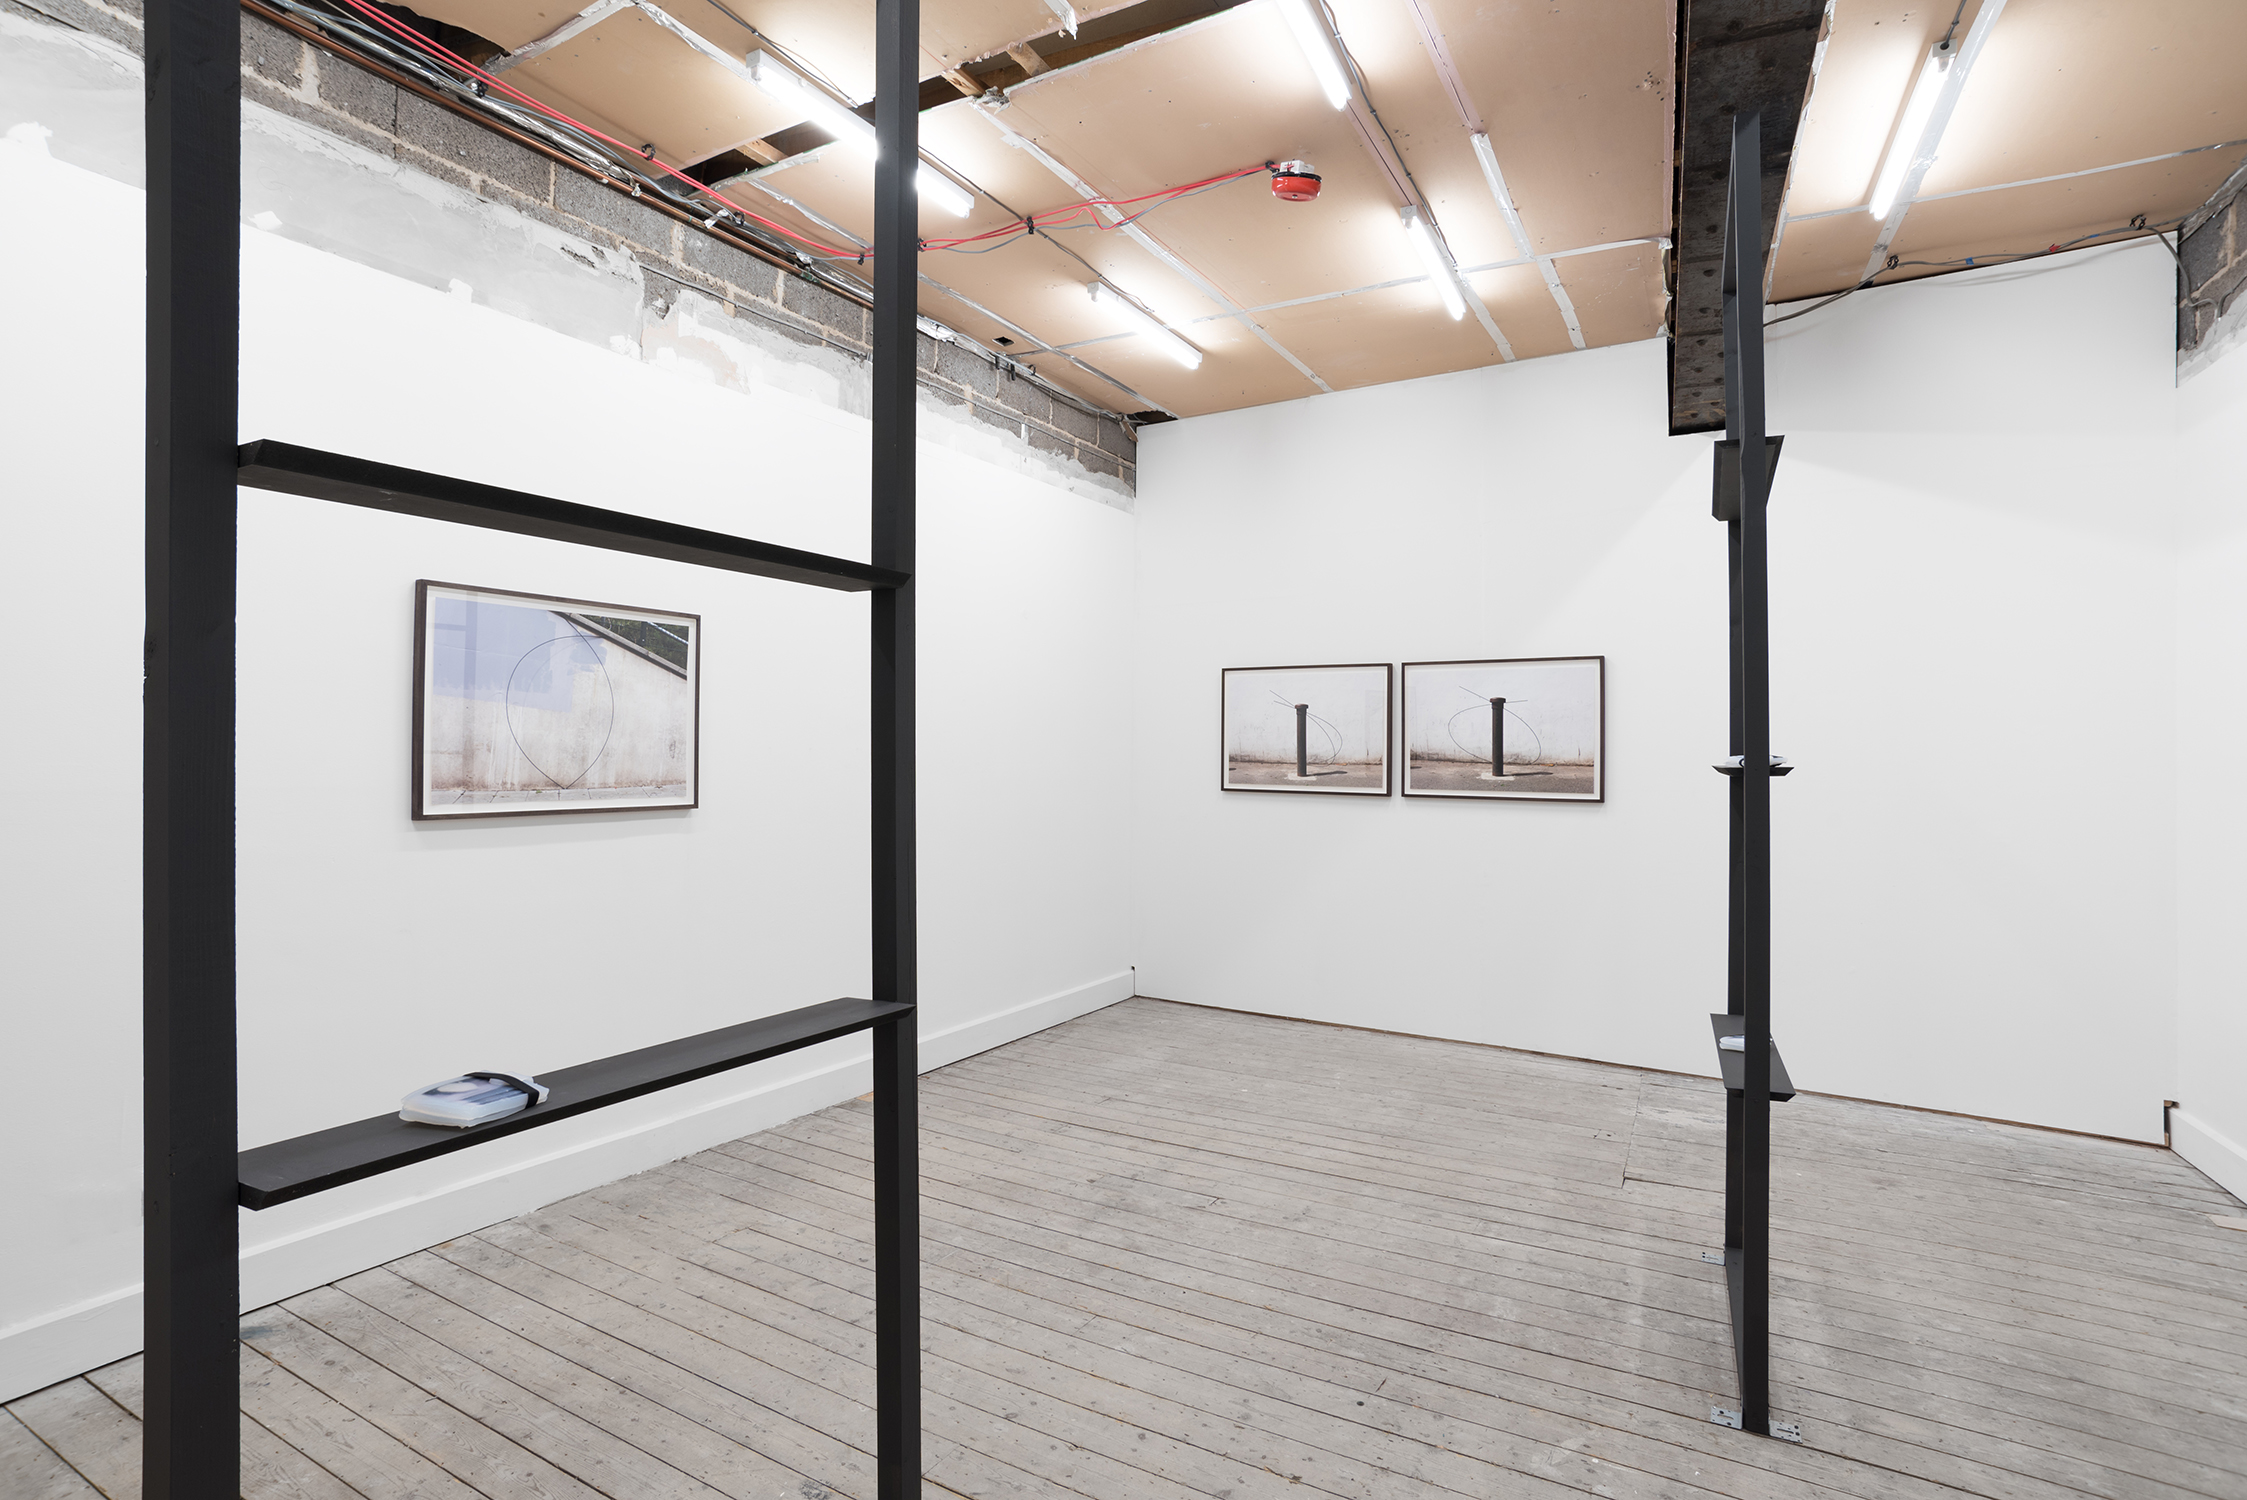 Charlie Godet Thomas, Strandline, 2016. Installation view. Set The Controls For The Heart Of The Sun, Leeds, UK.